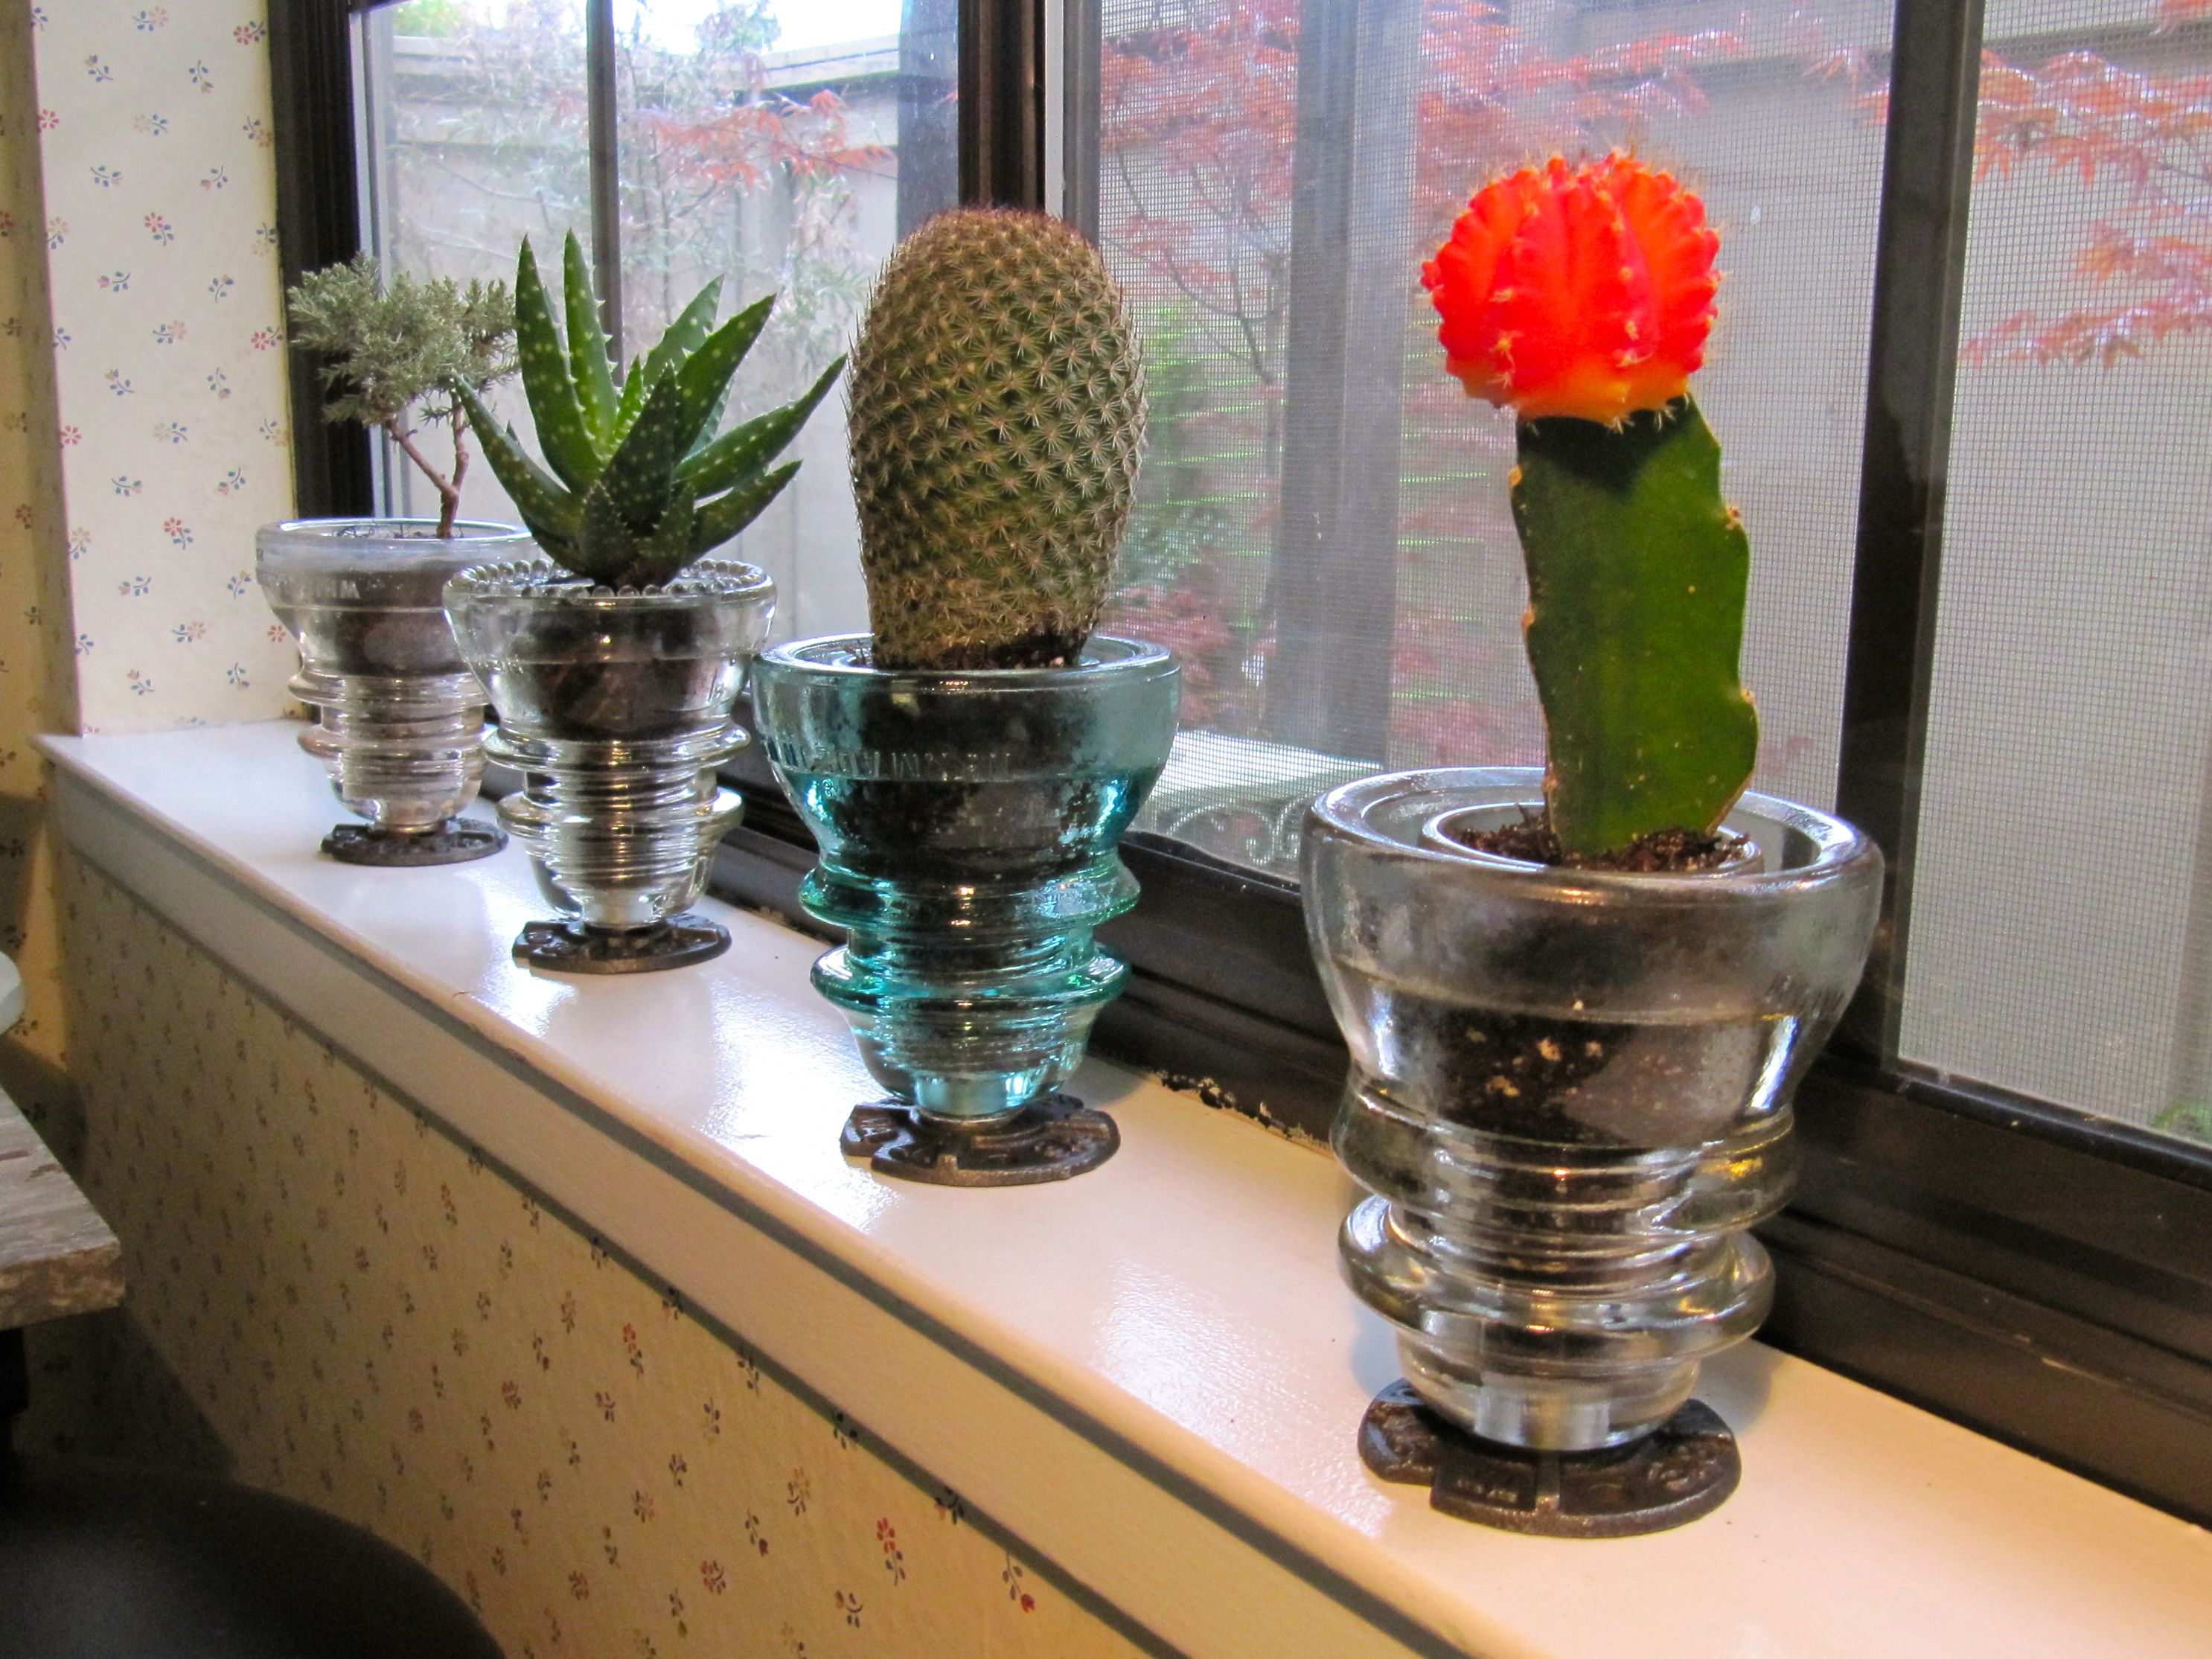 Cacti Amp Bonsai On A Window Sill For The Home